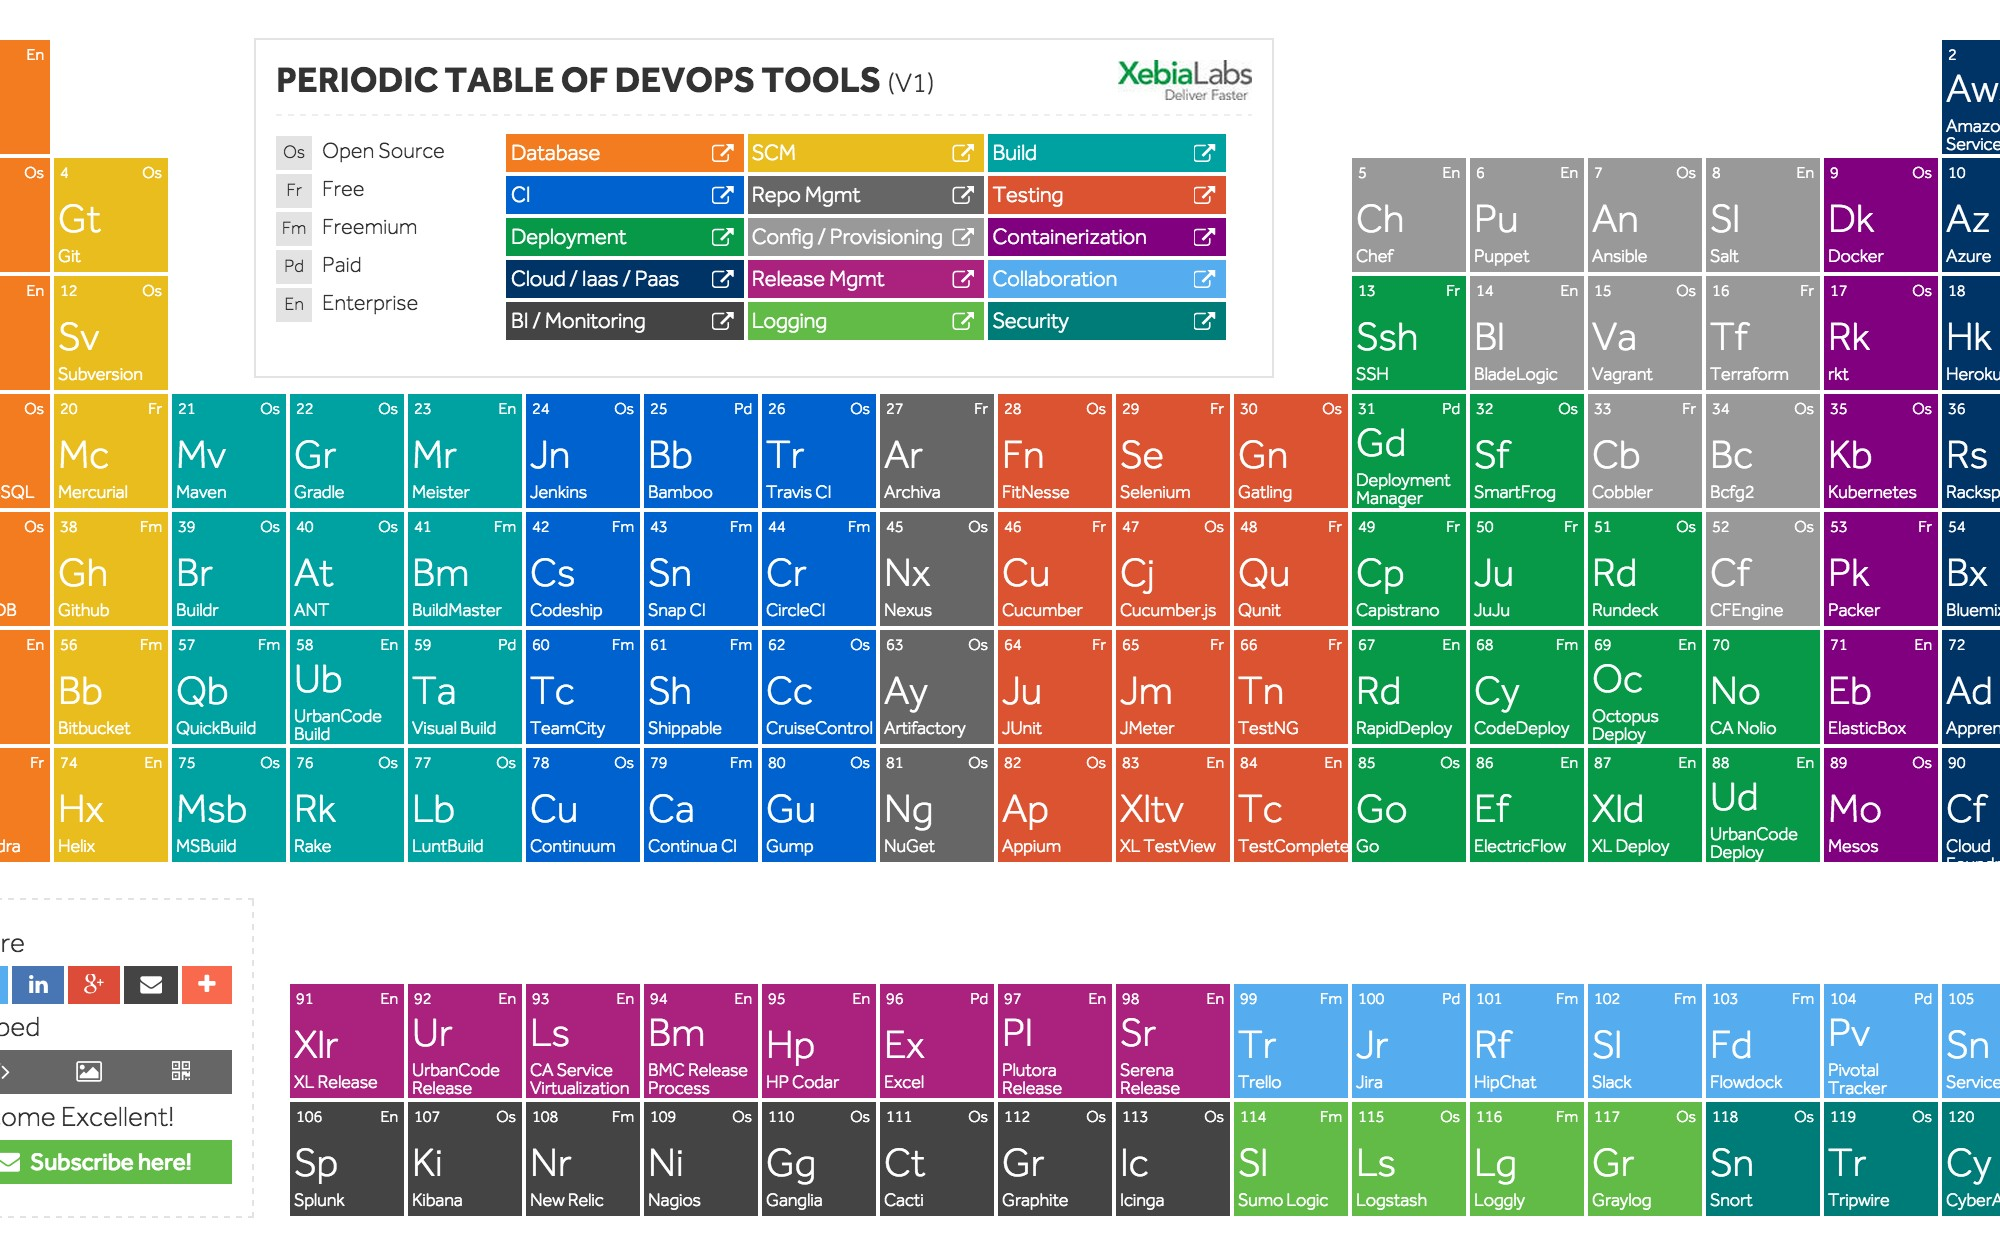 The periodic table of devops tools dzone devops urtaz Choice Image